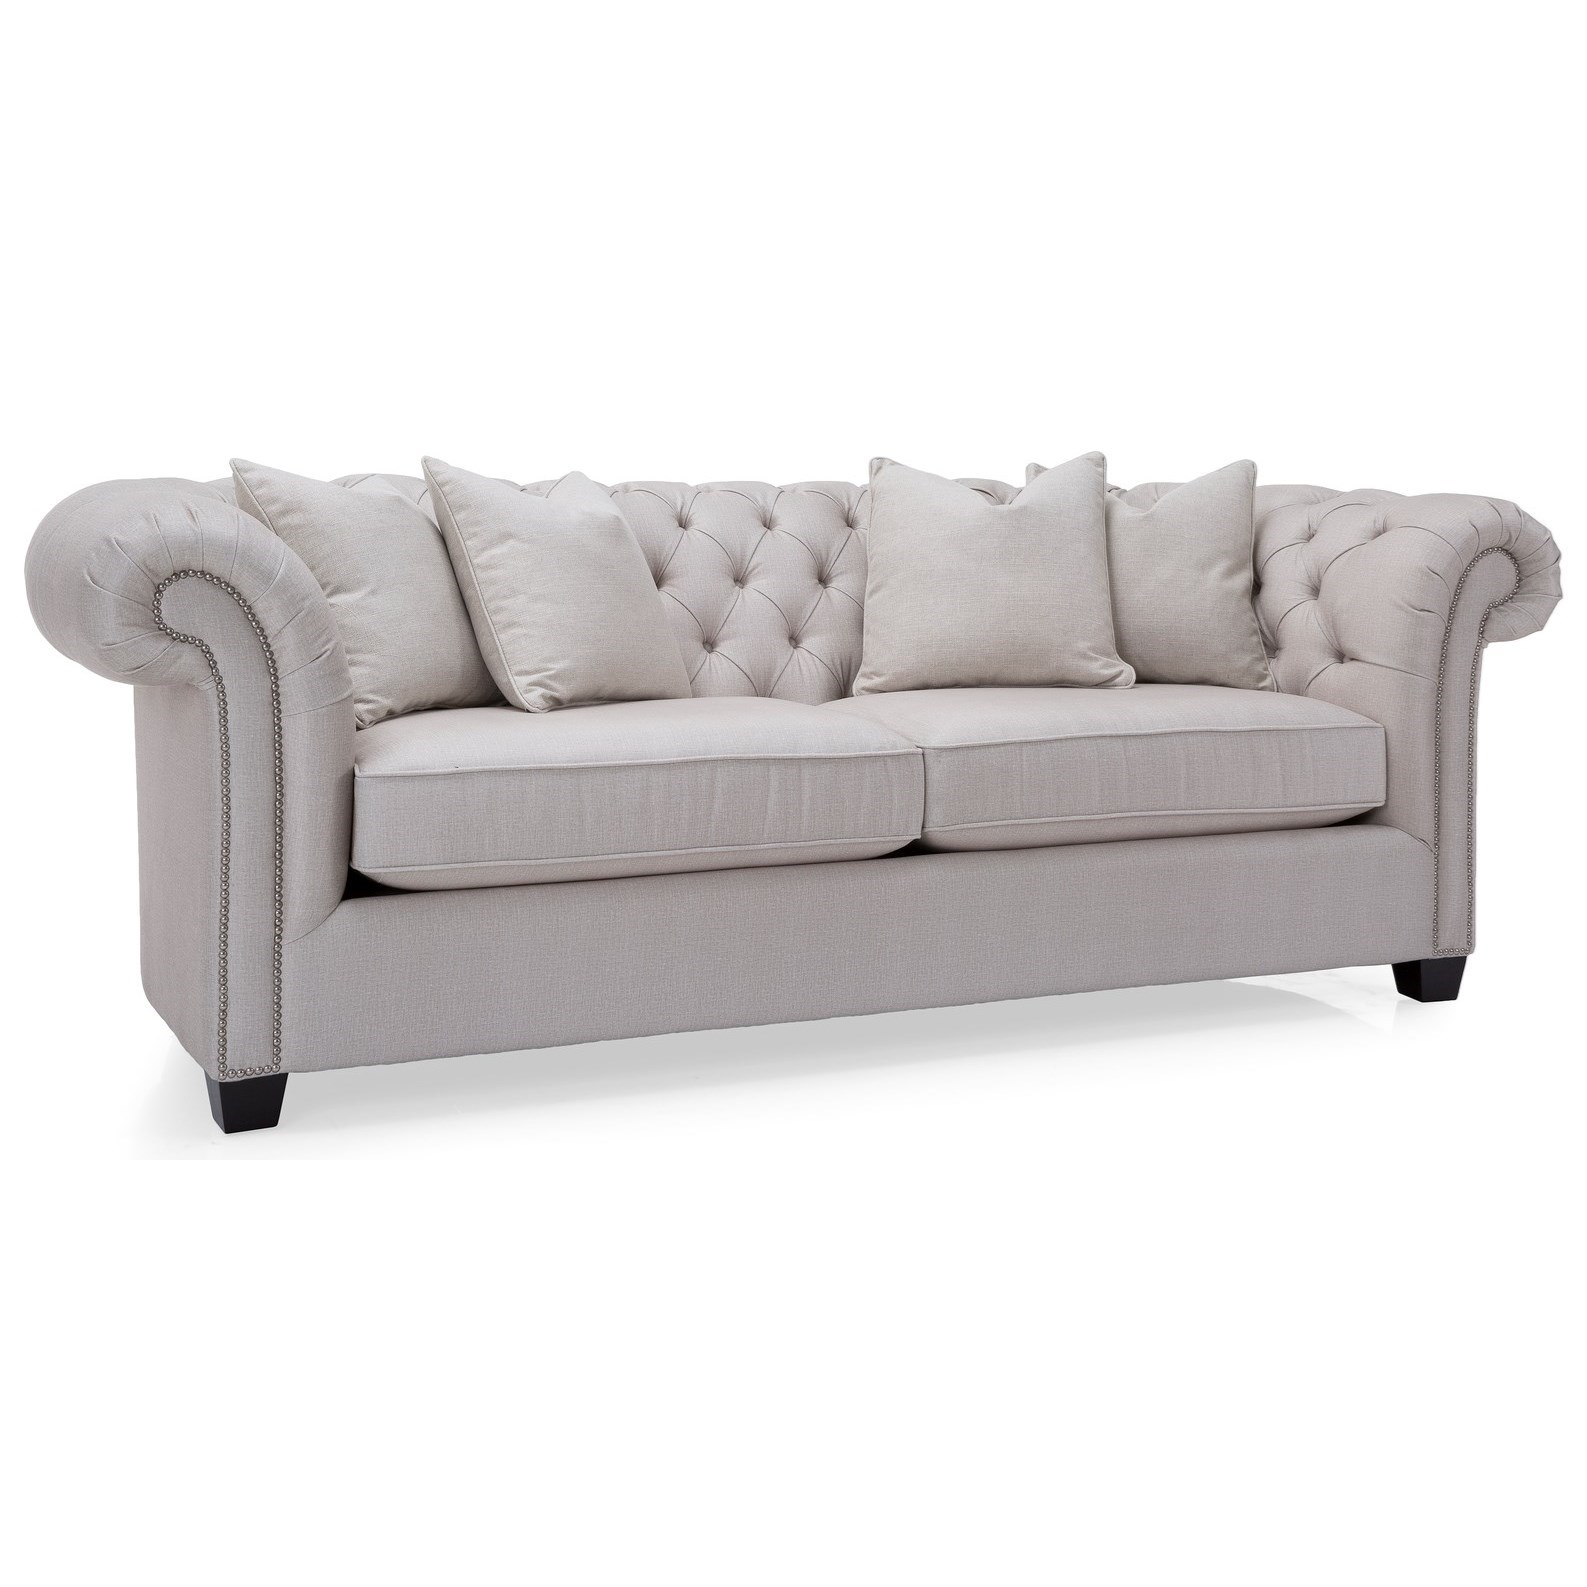 Churchill Sofa by Decor-Rest at Stoney Creek Furniture